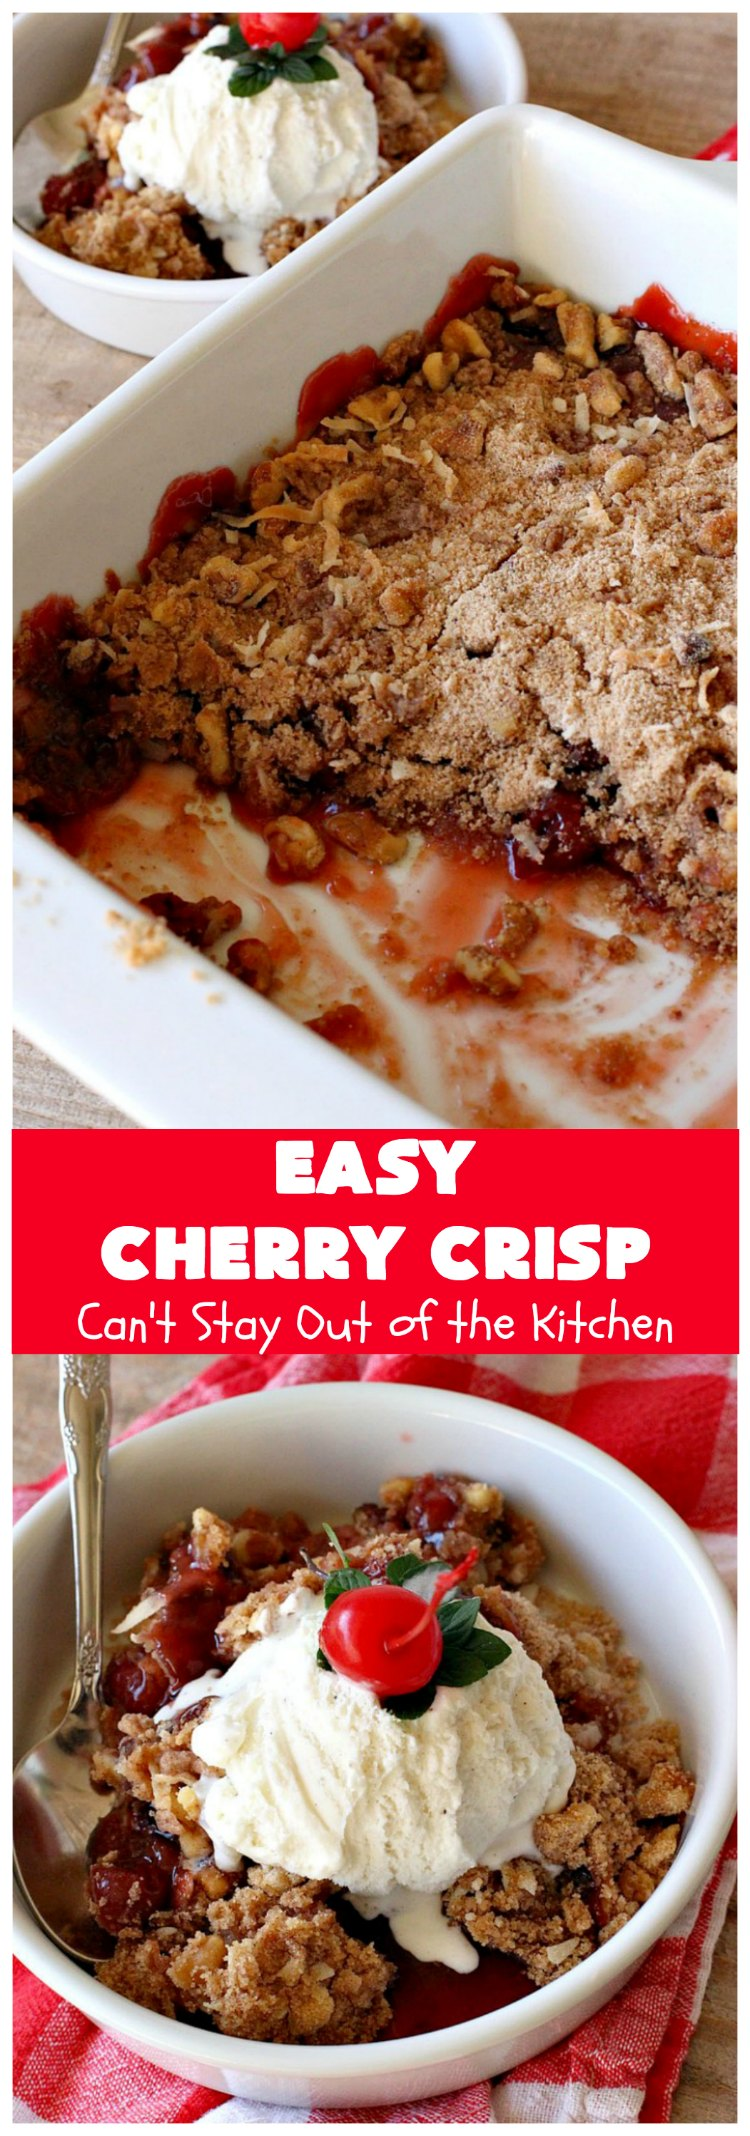 Easy Cherry Crisp| Can't Stay Out of the Kitchen | This scrumptious #dessert is also quick, easy & simple to make. Perfect for company or #ValentinesDay or other #holidays. #cherries #CherryDessert #EasyCherryCrisp